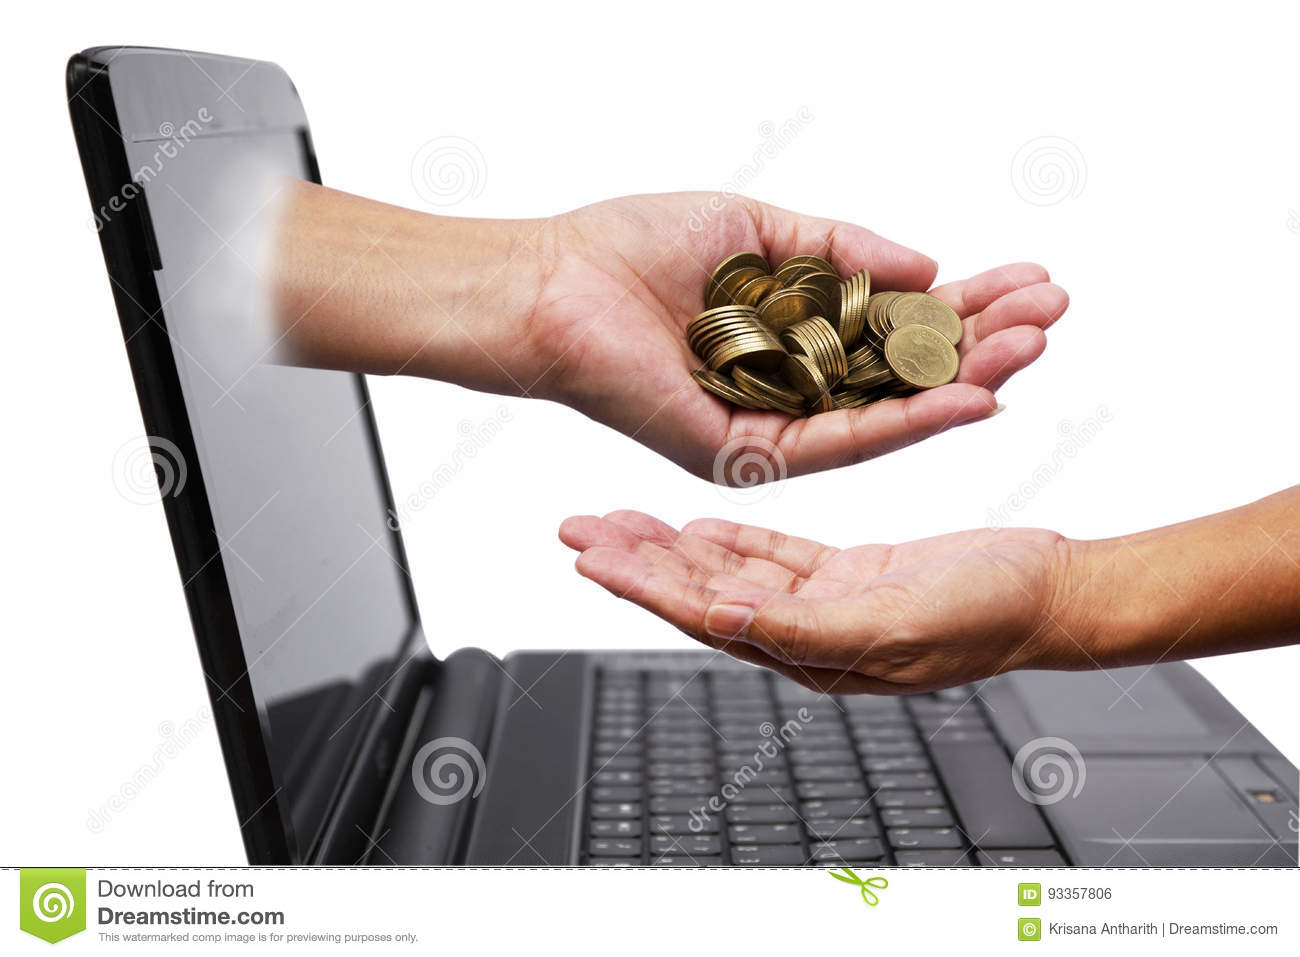 Hand with coins comes out of laptop monitor and pour down coins